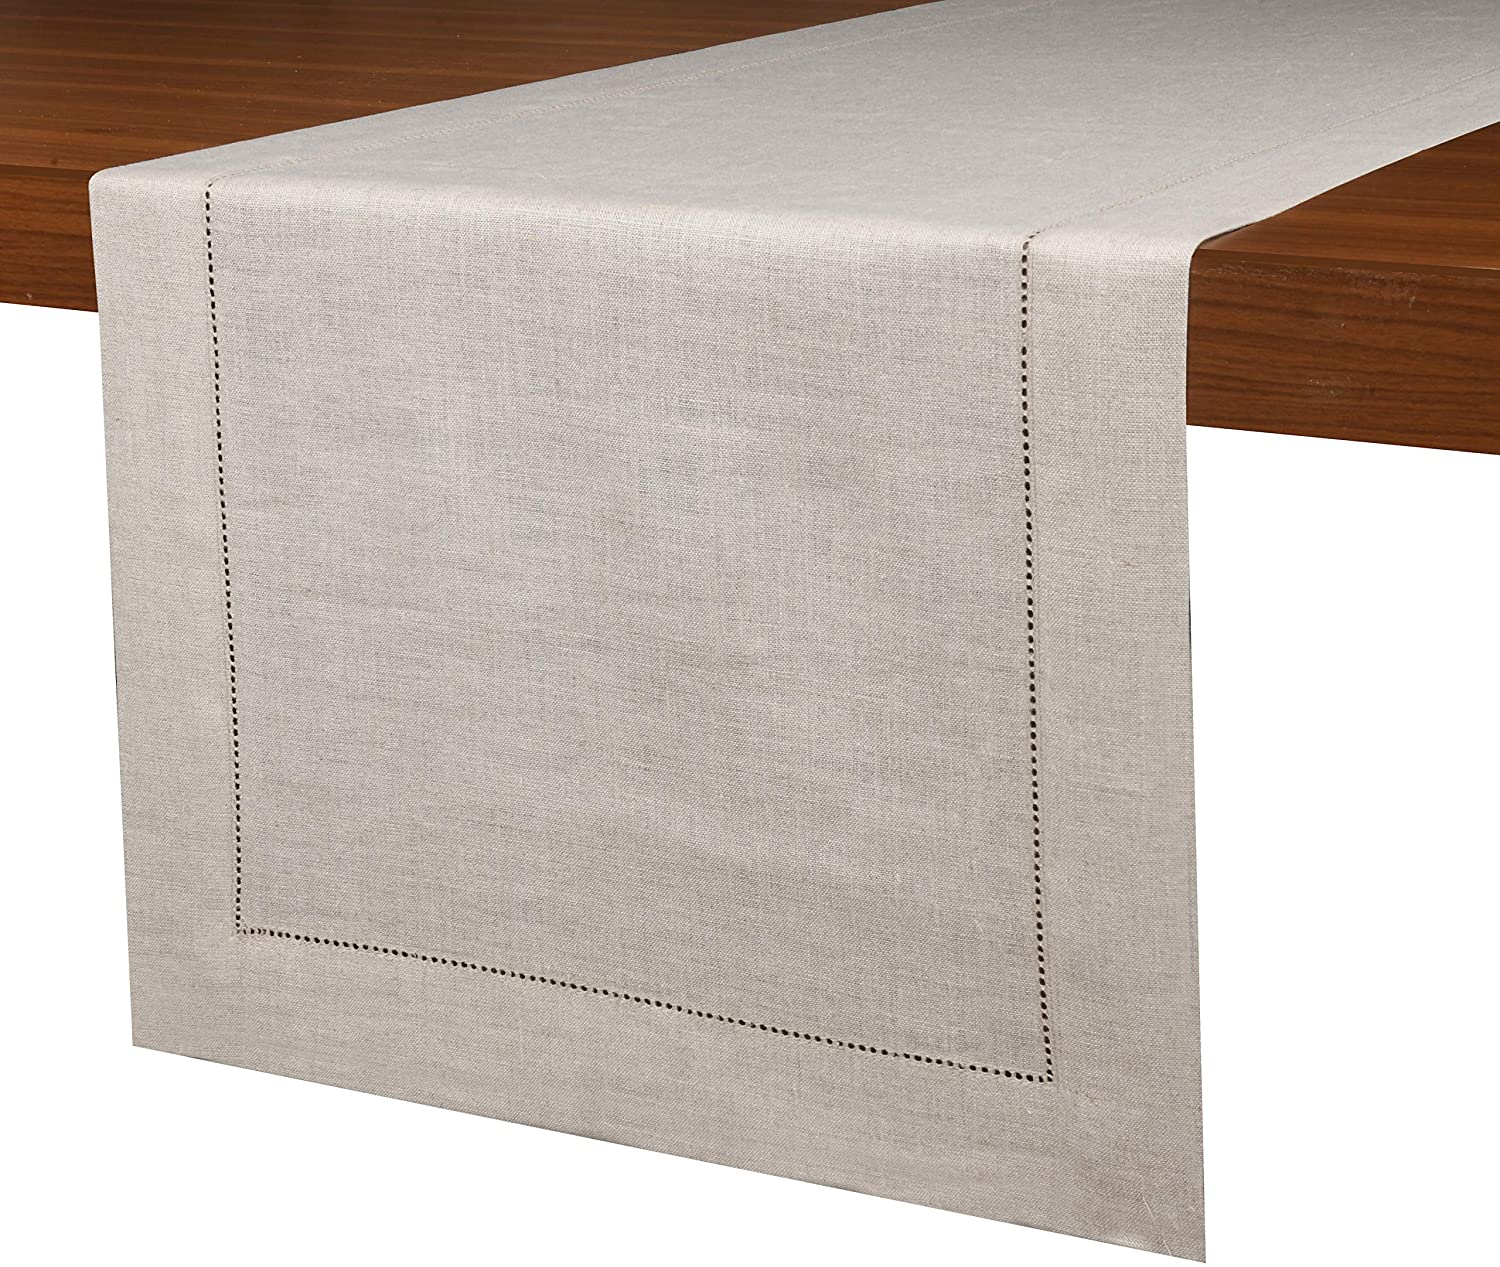 D'Moksha Homes 100% Pure Linen Hemstitch Table Runner - Vintage Natural 14 x 72 Inch, Natural Fabric European Flax, Machine Washable, Handcrafted Dresser Scarf with Mitered Corners, Great Gift Choice